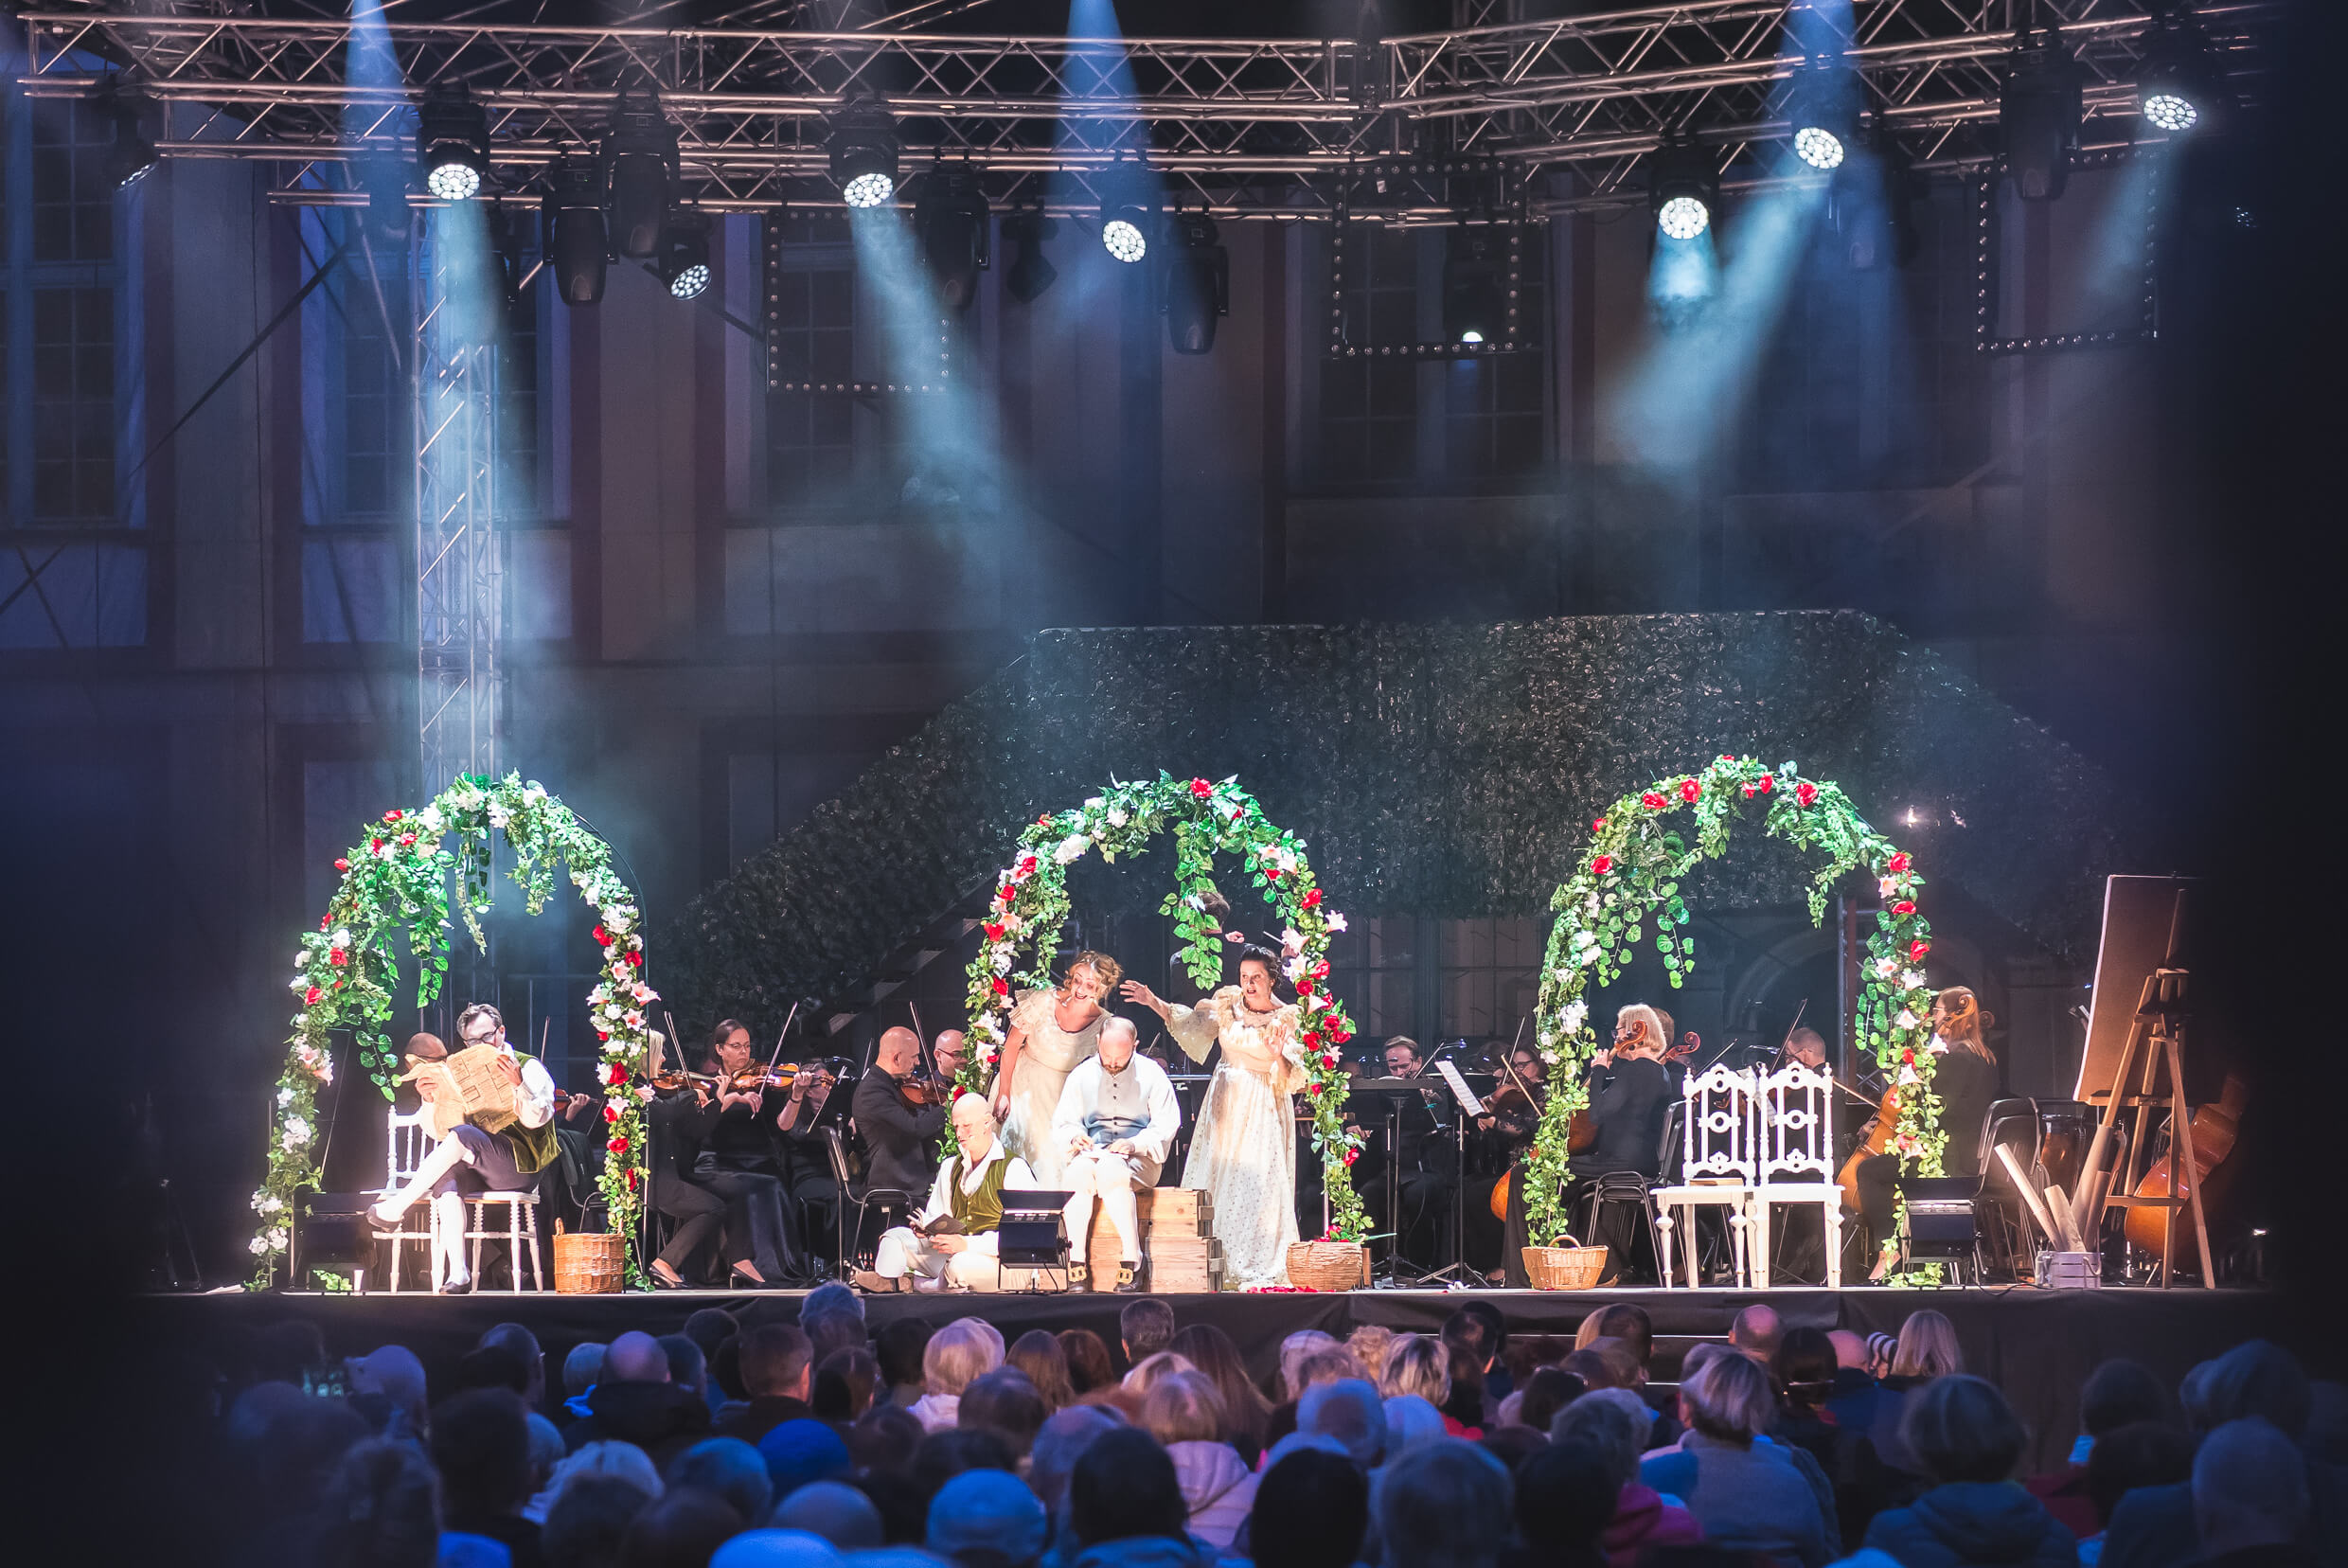 Mozartiana 4 - Mozartiana in Gdansk - for the love of classical music